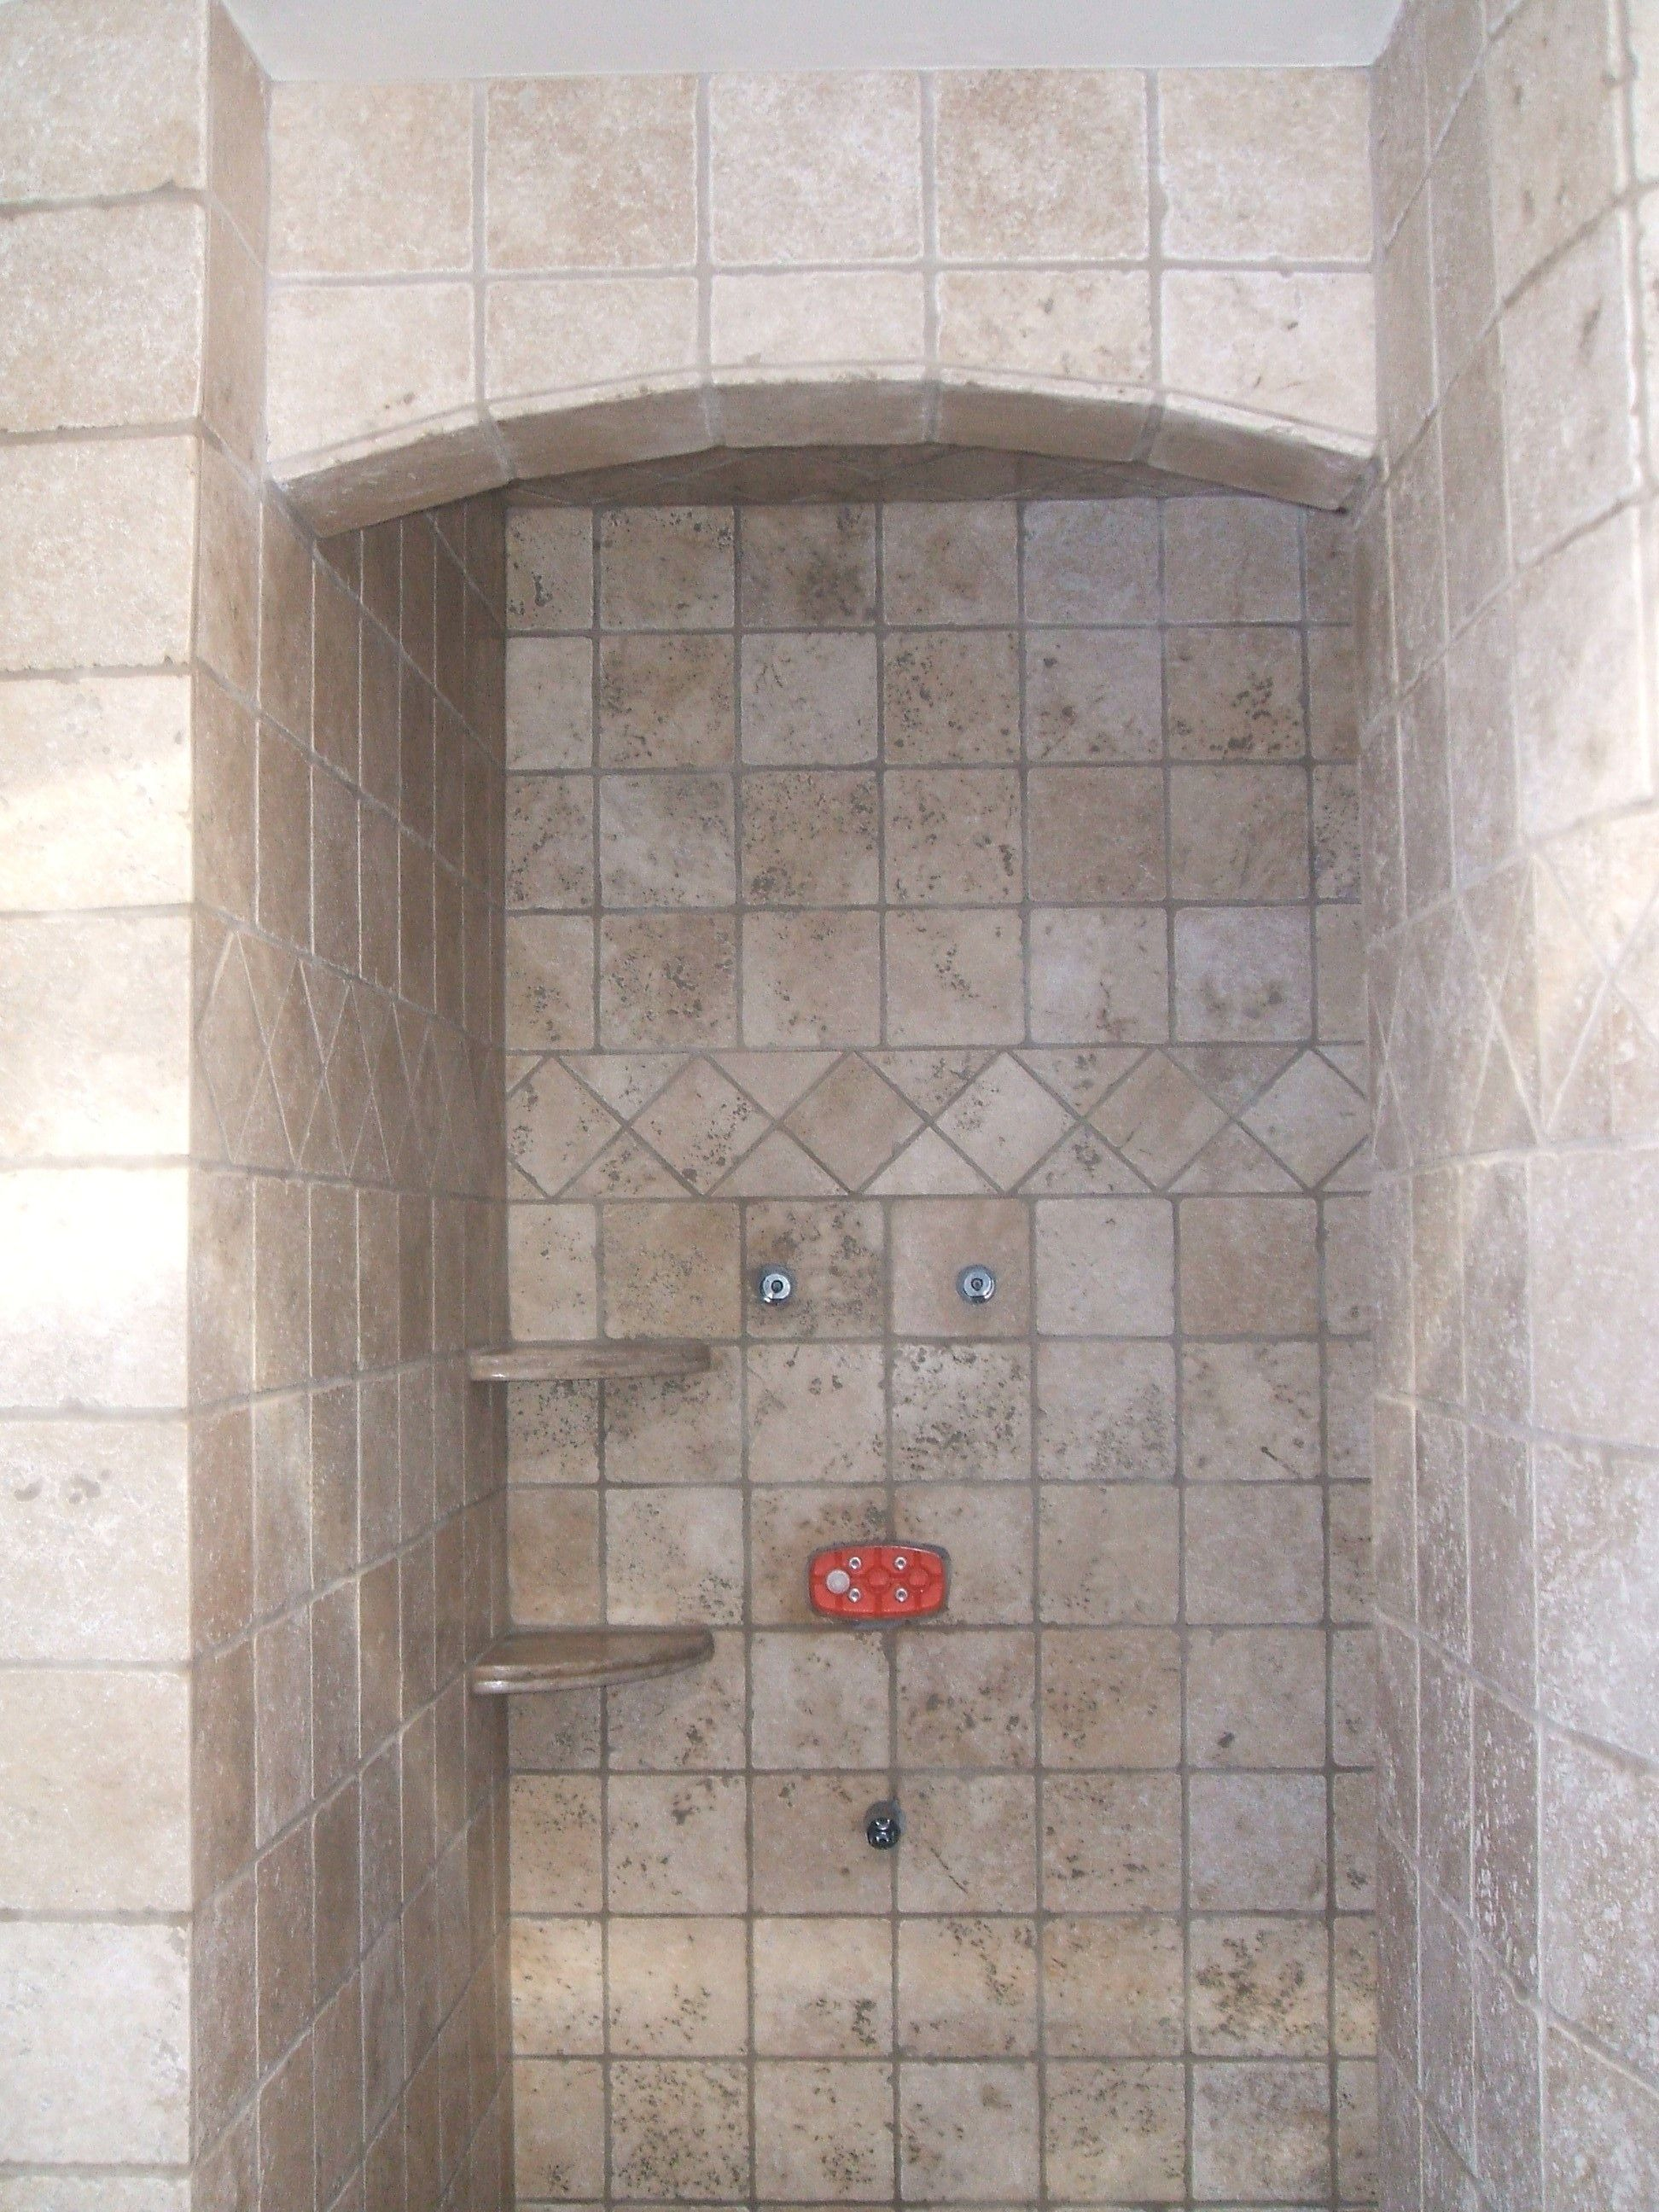 Terrific ceramic tile shower ideas small bathrooms with for Tile designs for bathroom